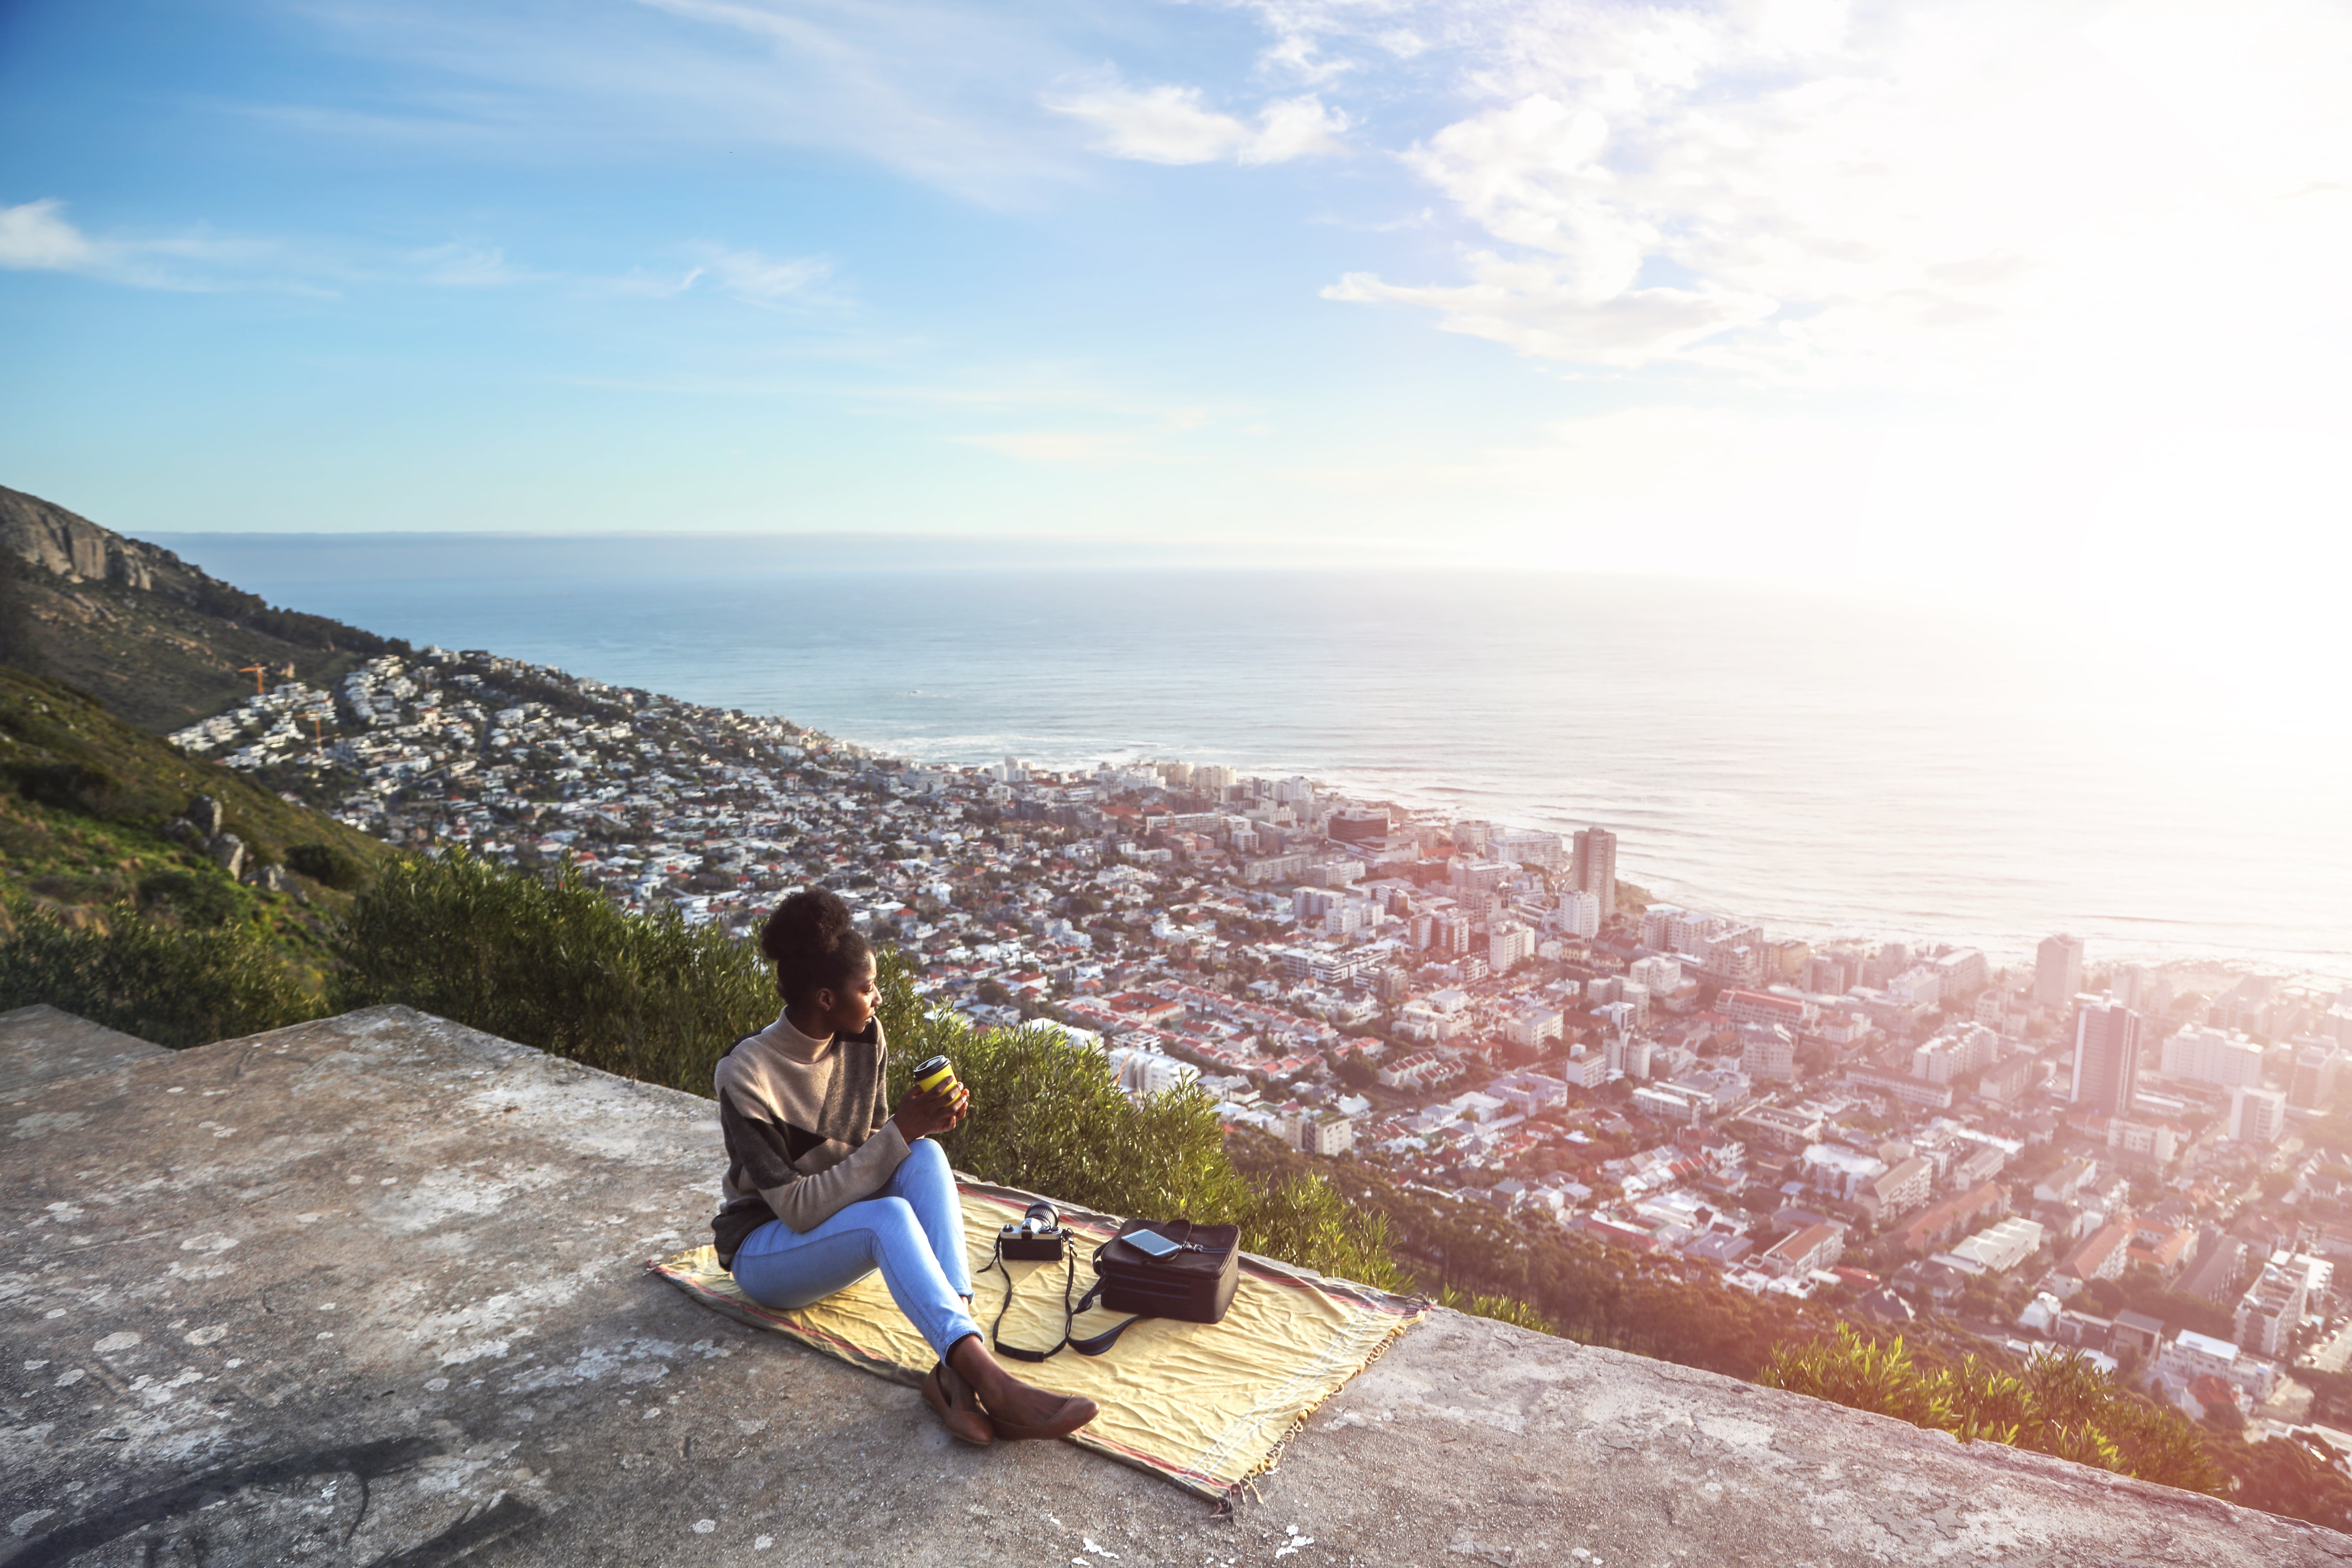 Your Guide to Planning An Epic Trip to South Africa